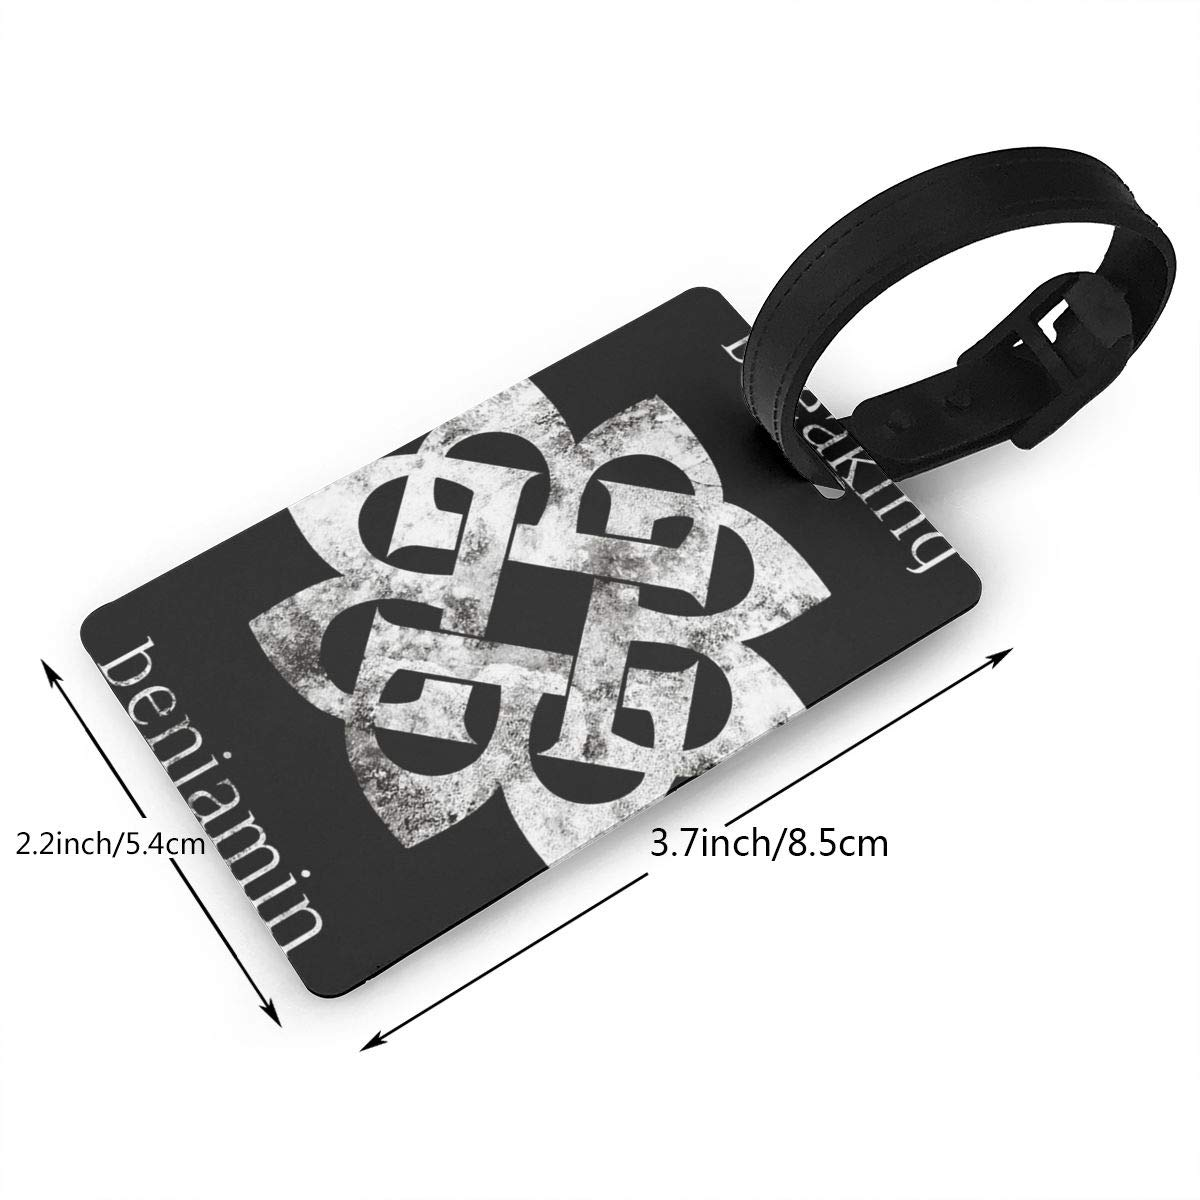 Hushuxiapp Breaking Benjamin Complete Printed Design PVC Luggage Tag Travel Suitcase ID Labels Accessories Leather Wristband